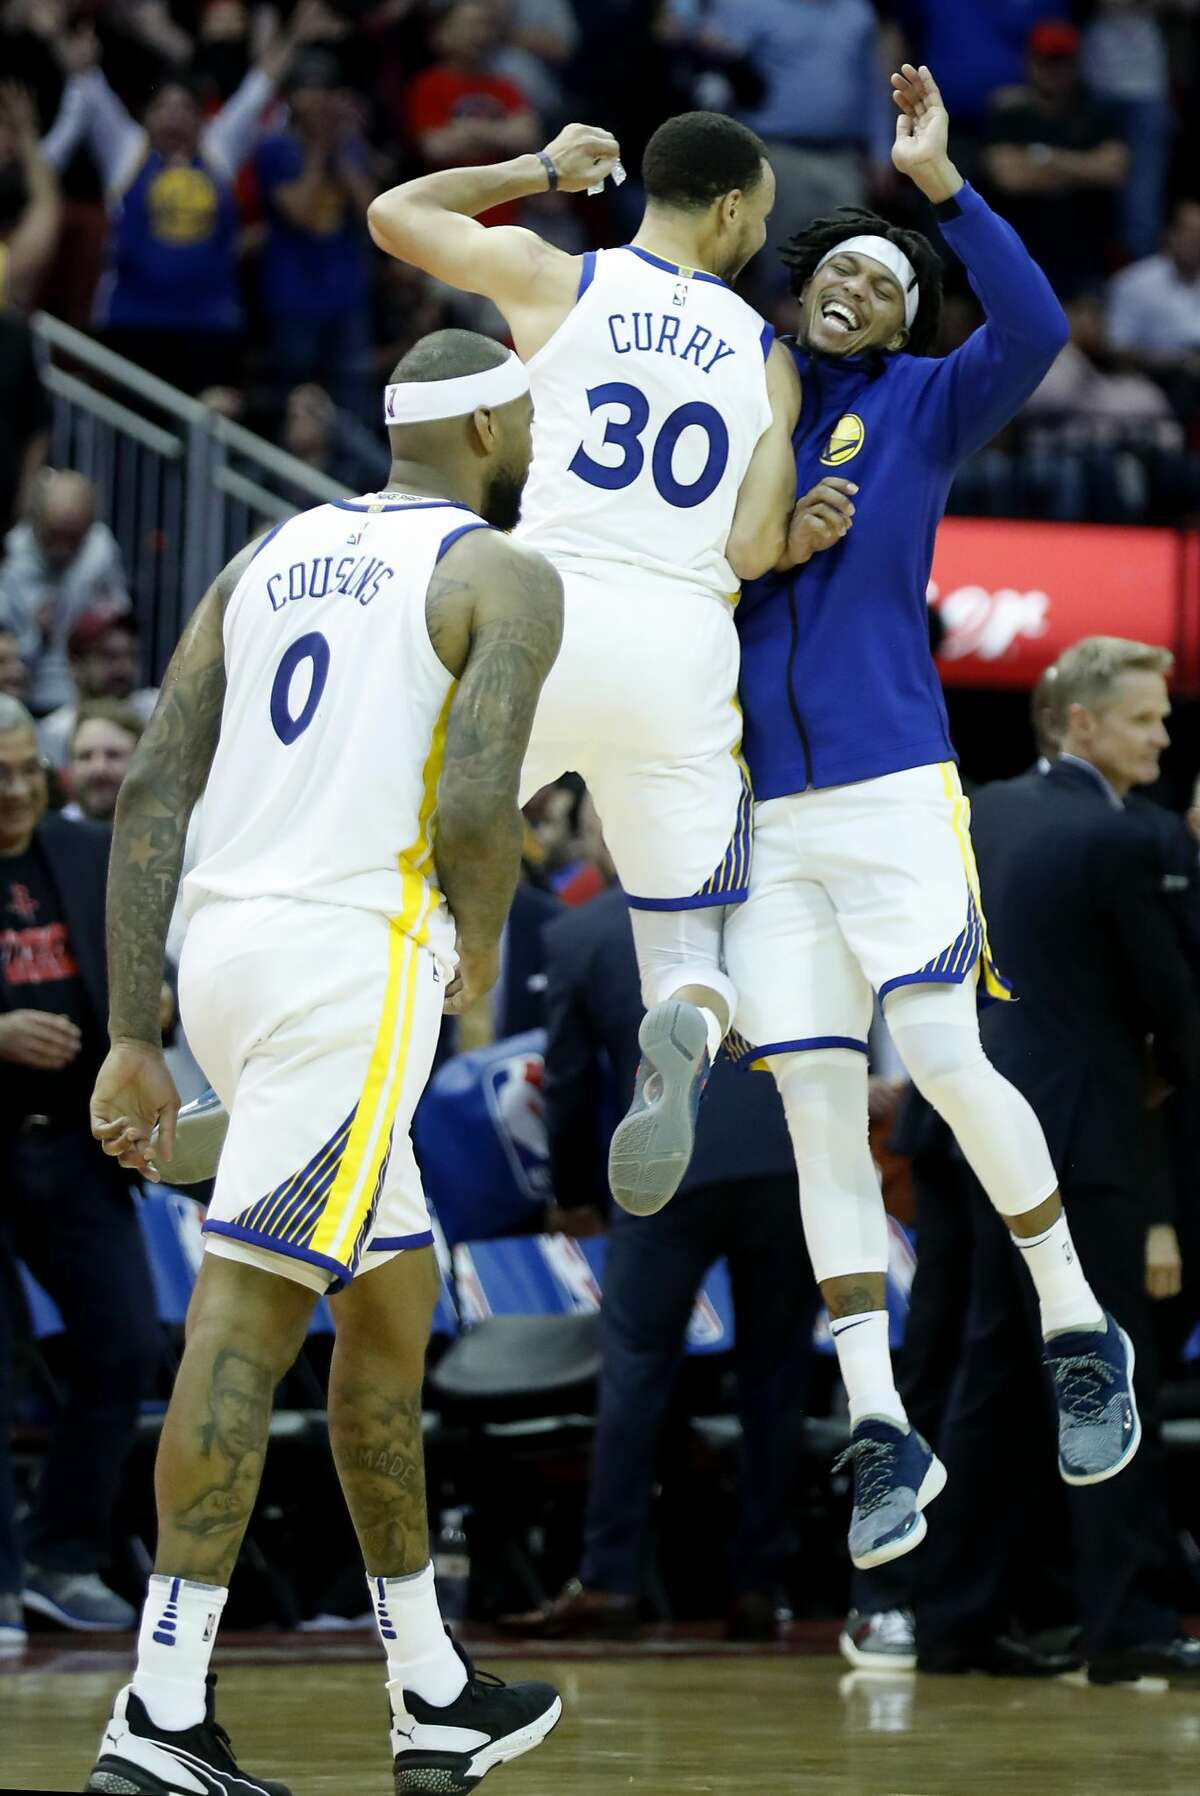 Golden State Warriors guard Stephen Curry (30) and Golden State Warriors guard Damion Lee celebrate the Warriors 106-104 win over the Houston Rockets in an NBA basketball game at Toyota Center on Wednesday, March 13, 2019, in Houston.